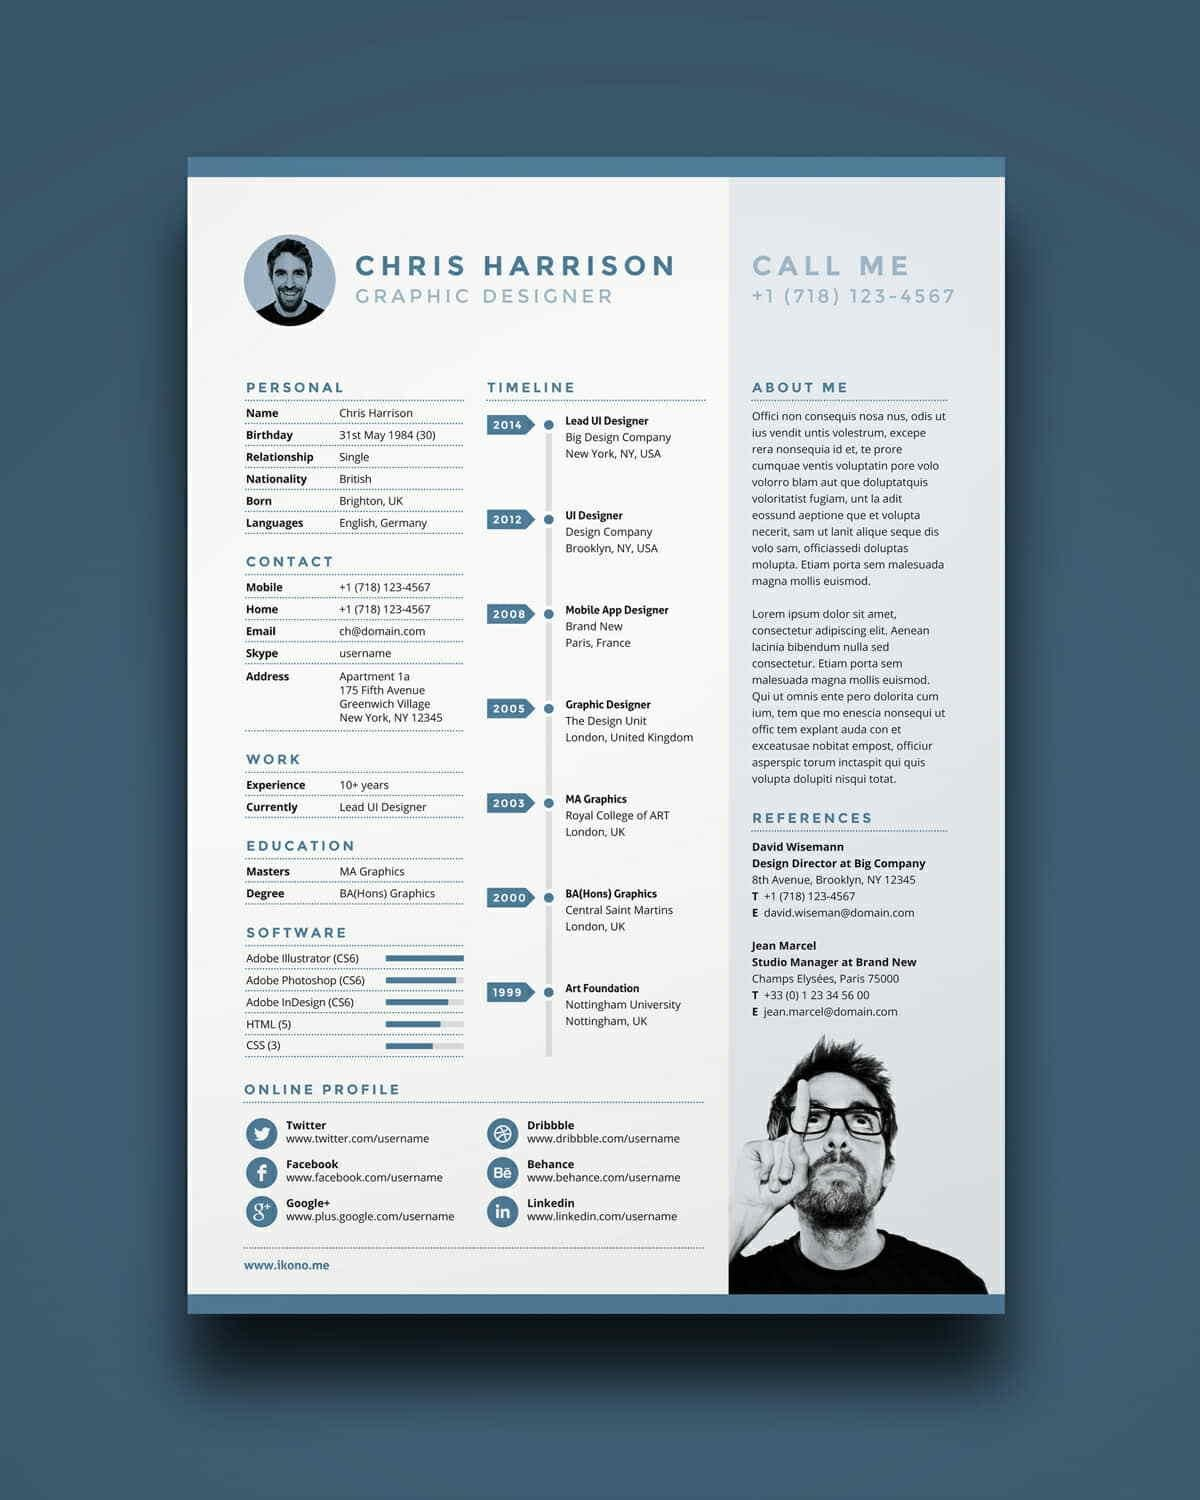 Free Resume Templates: 17+ Free CV Templates to Download & Use